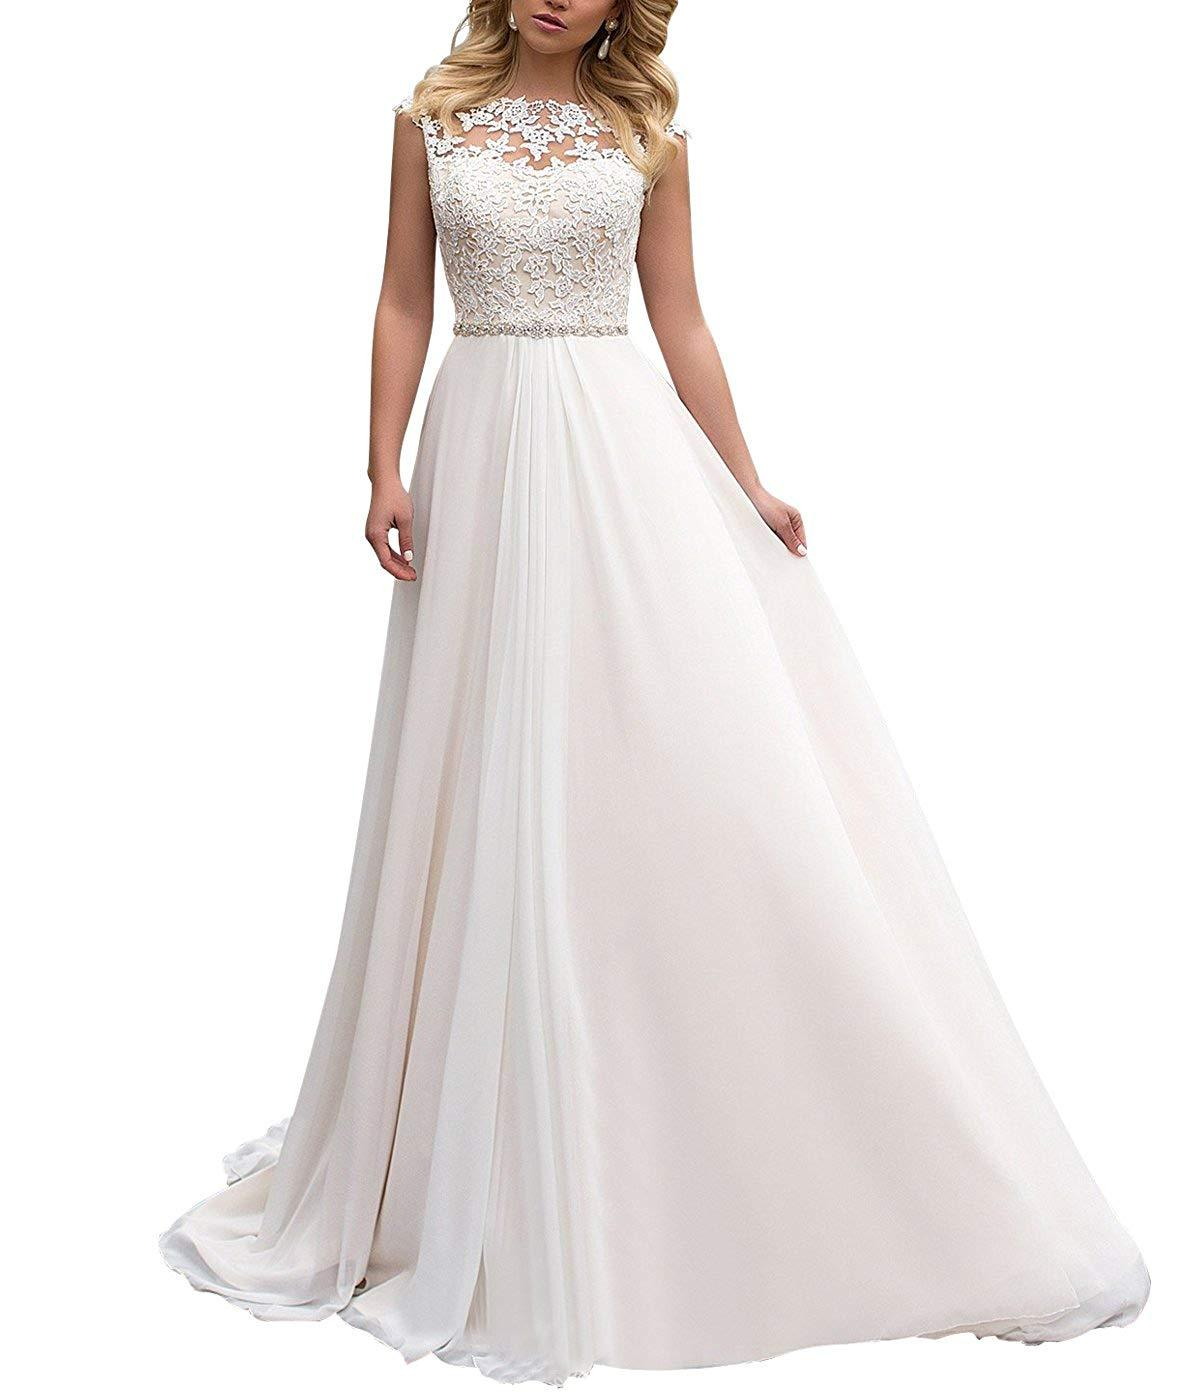 High Neck Lace Wedding Dress Chiffon with Beads Belt Long Beach Bridal Gowns